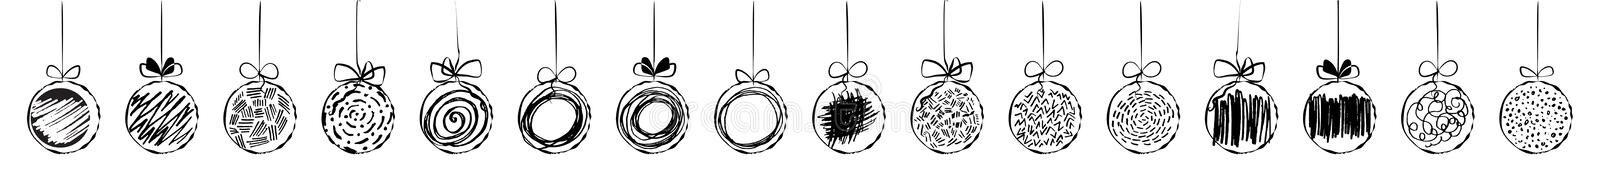 Hand drawn christmas ball collection isolated on white background stock illustration